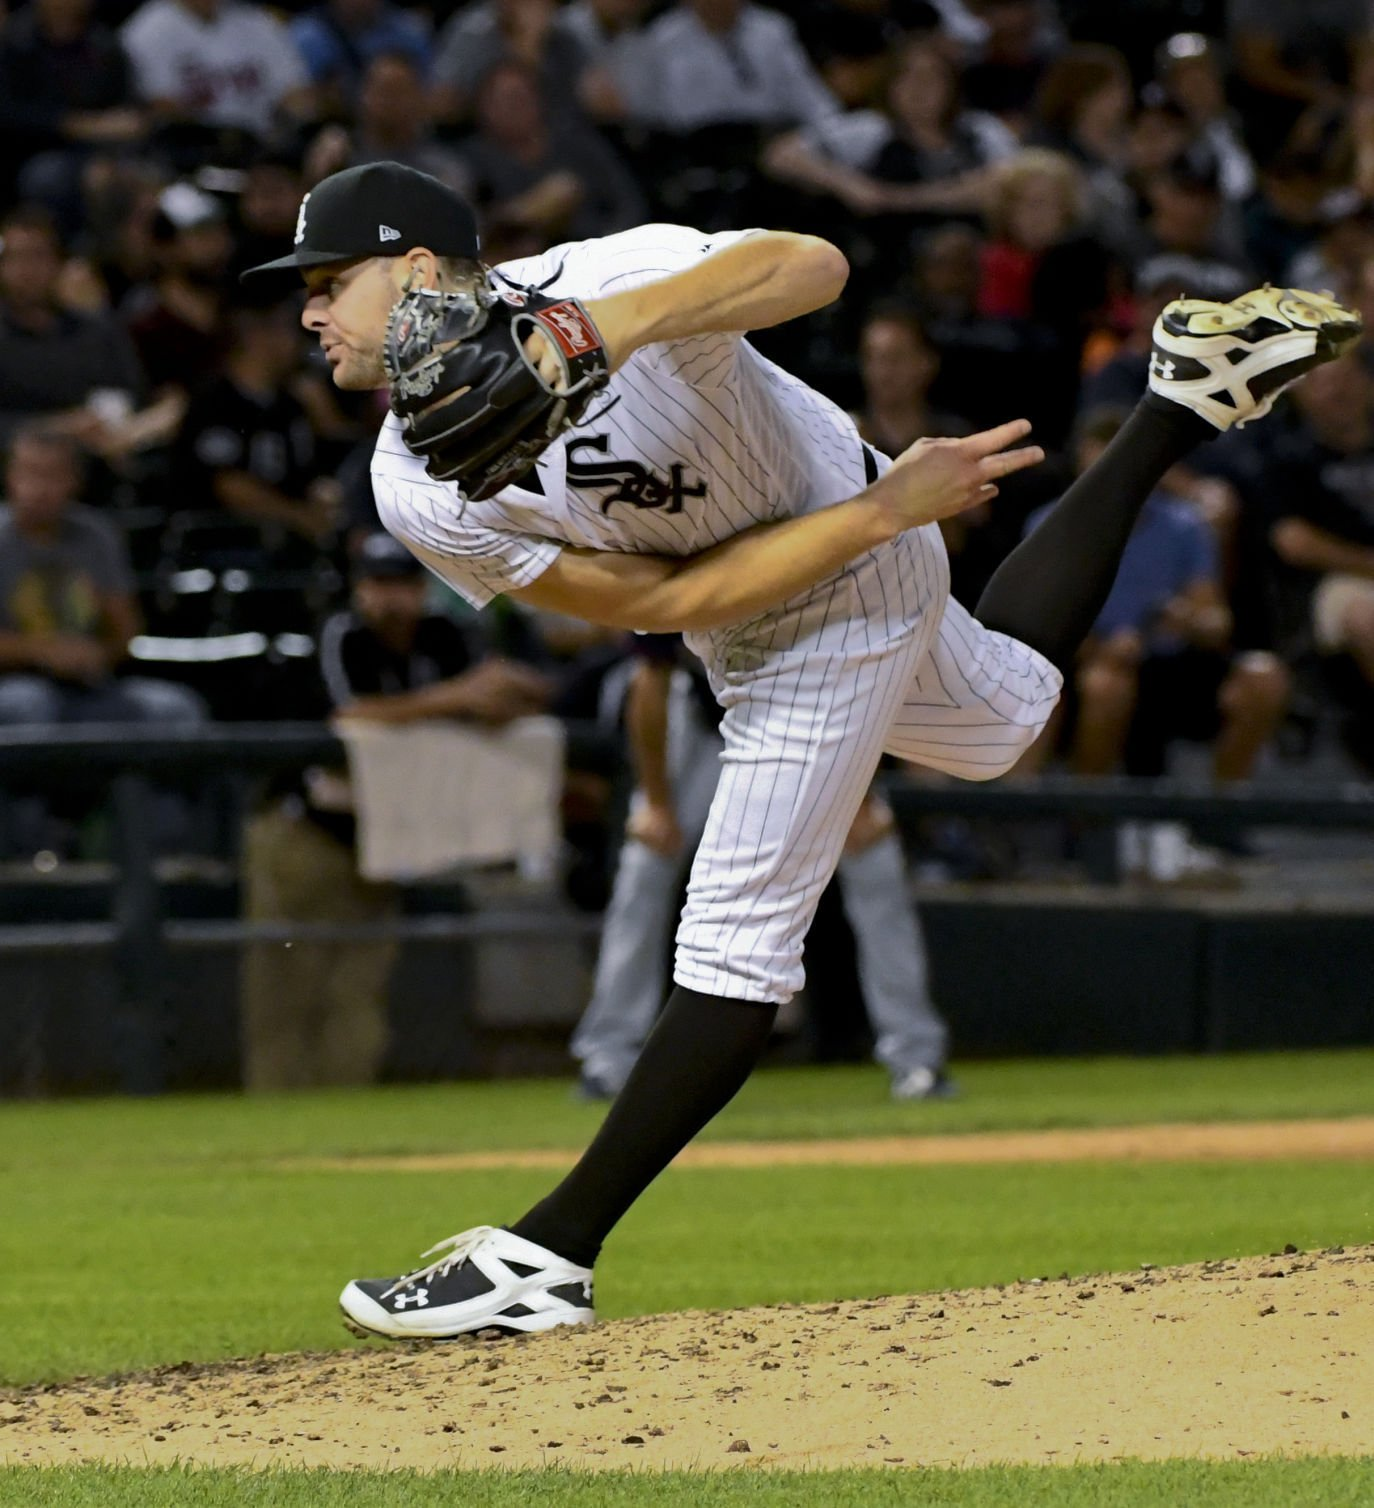 Holland pitches White Sox to victory over Twins